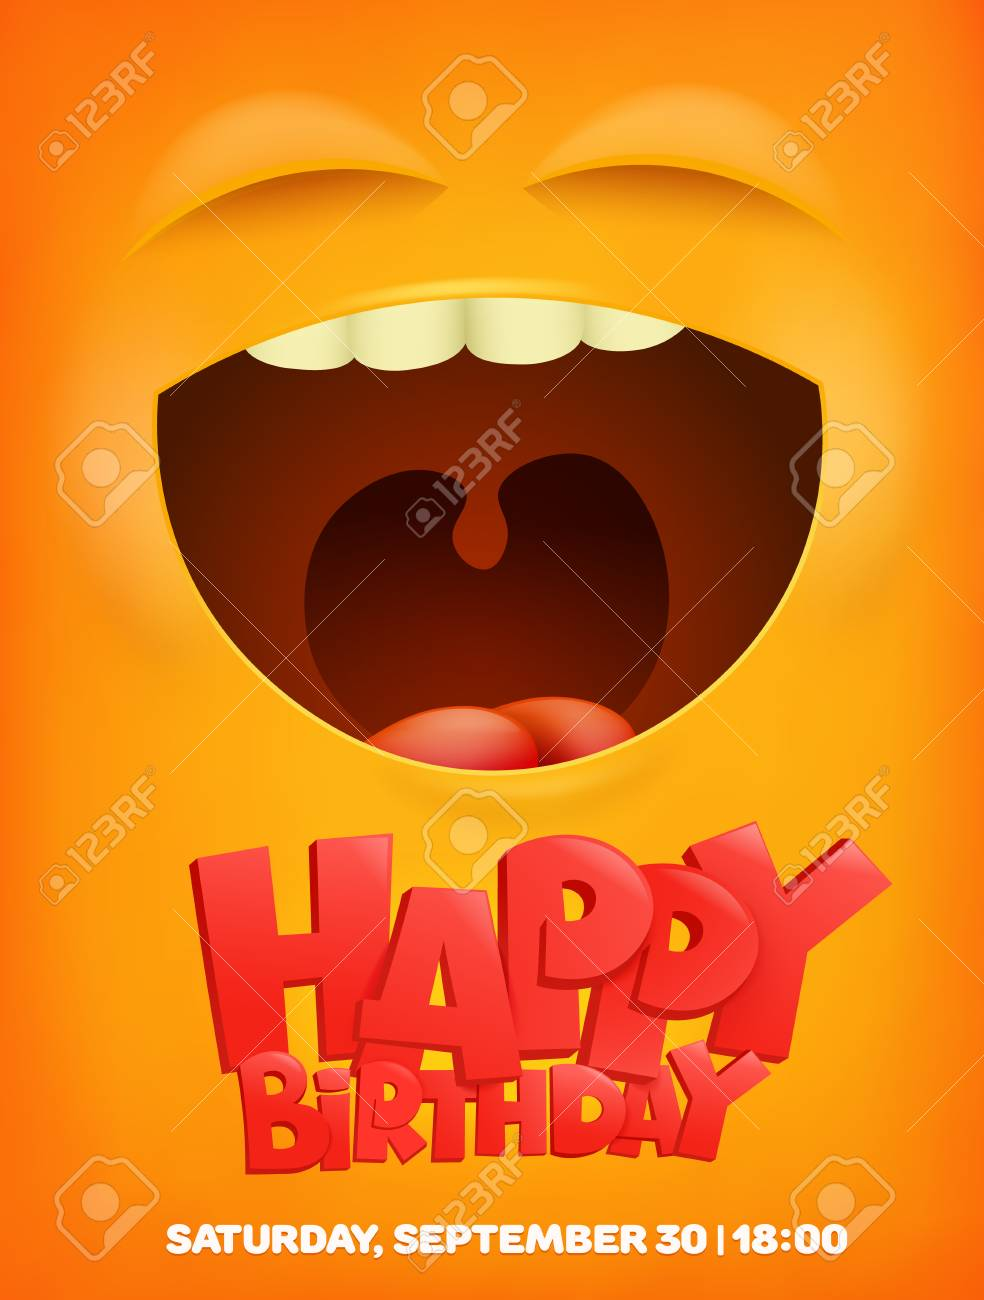 Happy Birthday Greeting Card With Emoji Smile Face Vector Illustration Stock